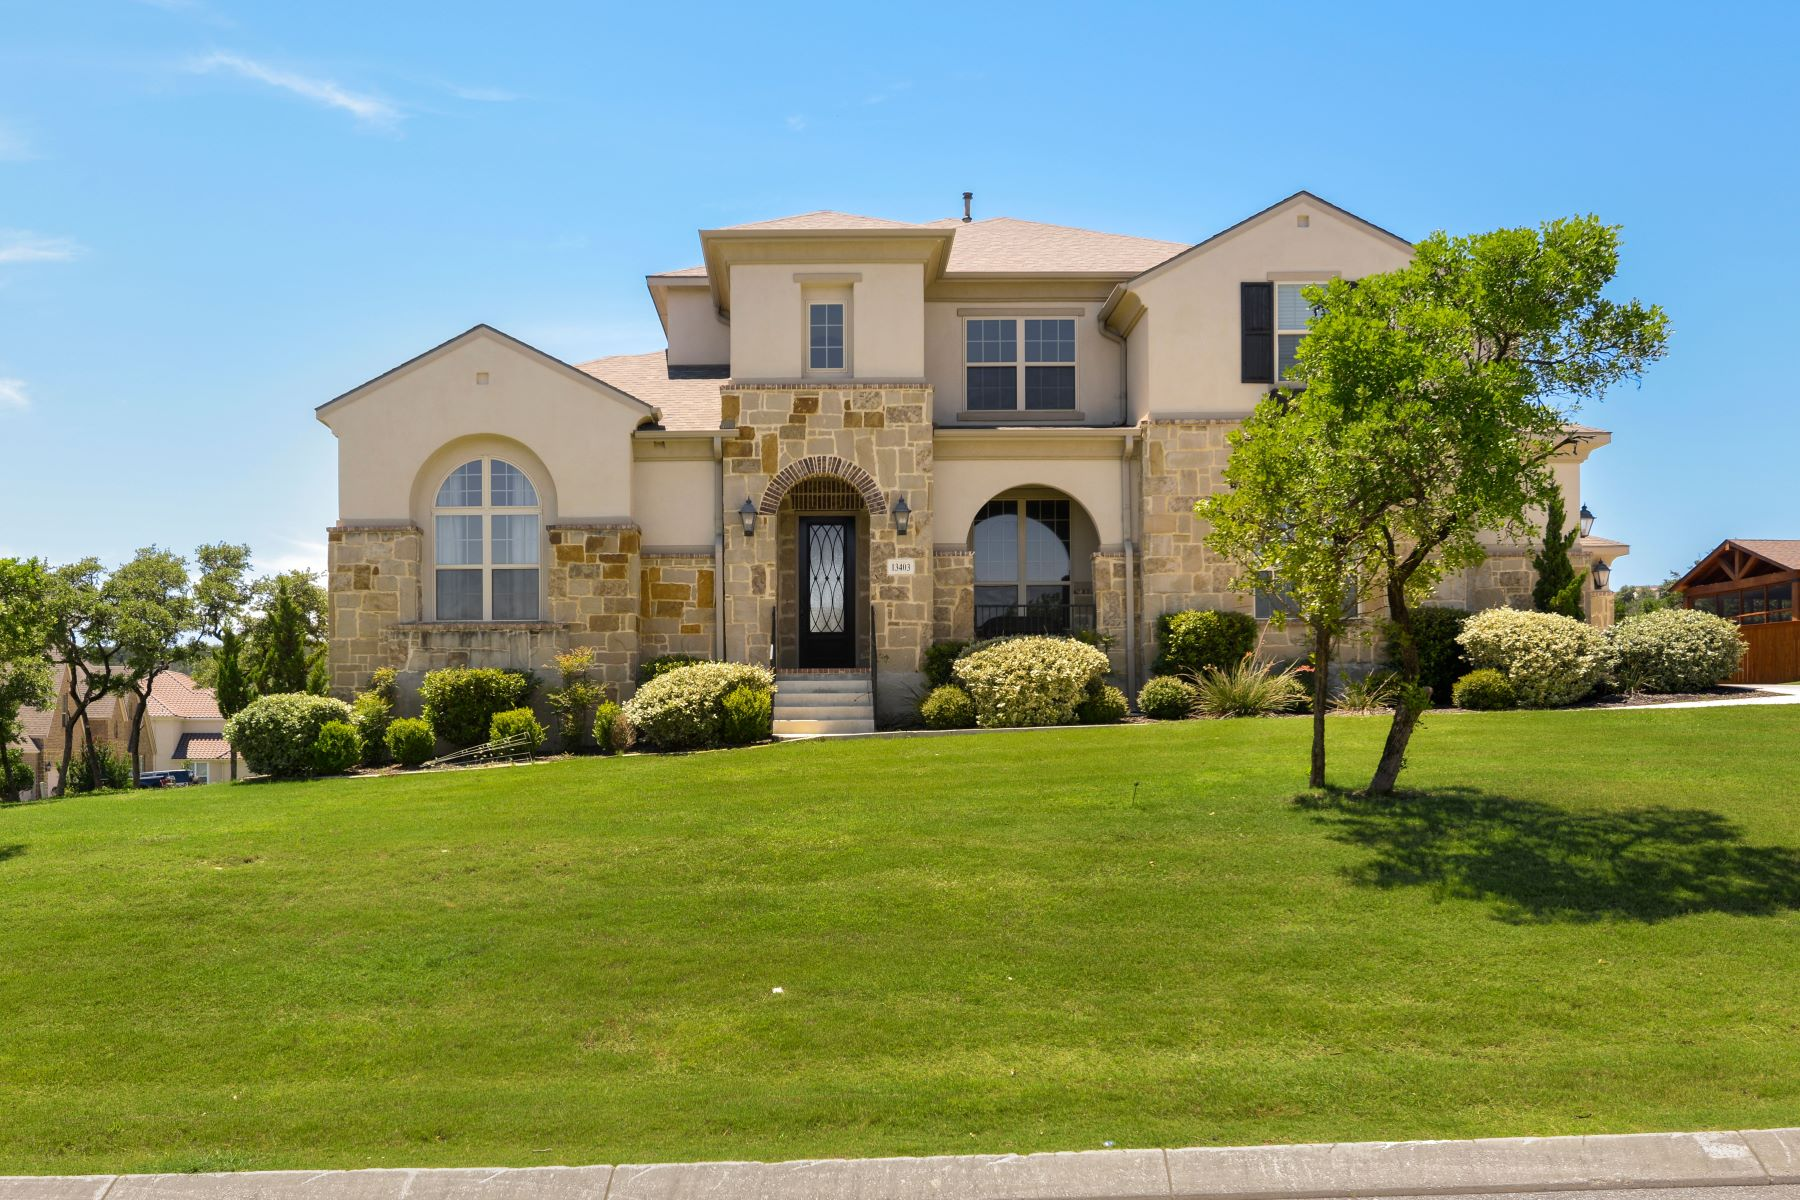 Single Family Homes for Active at Stunning Home in The Ranch at Iron Horse 13403 Pecan Stable Helotes, Texas 78023 United States